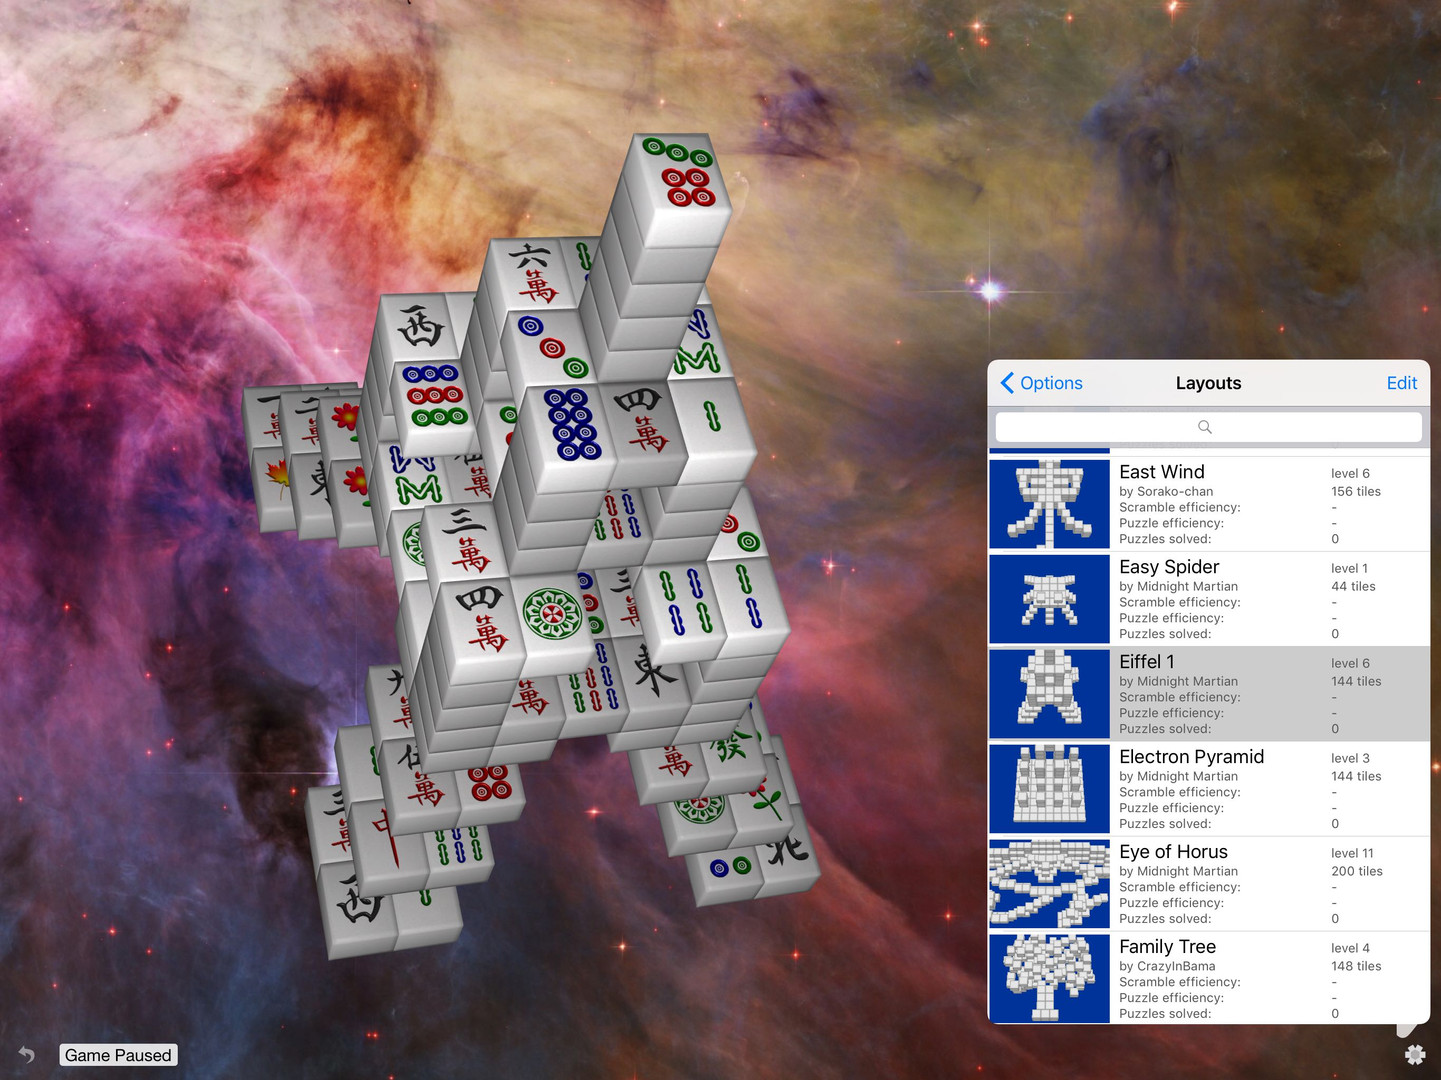 Moonlight Mahjong Screenshot 3.jpg